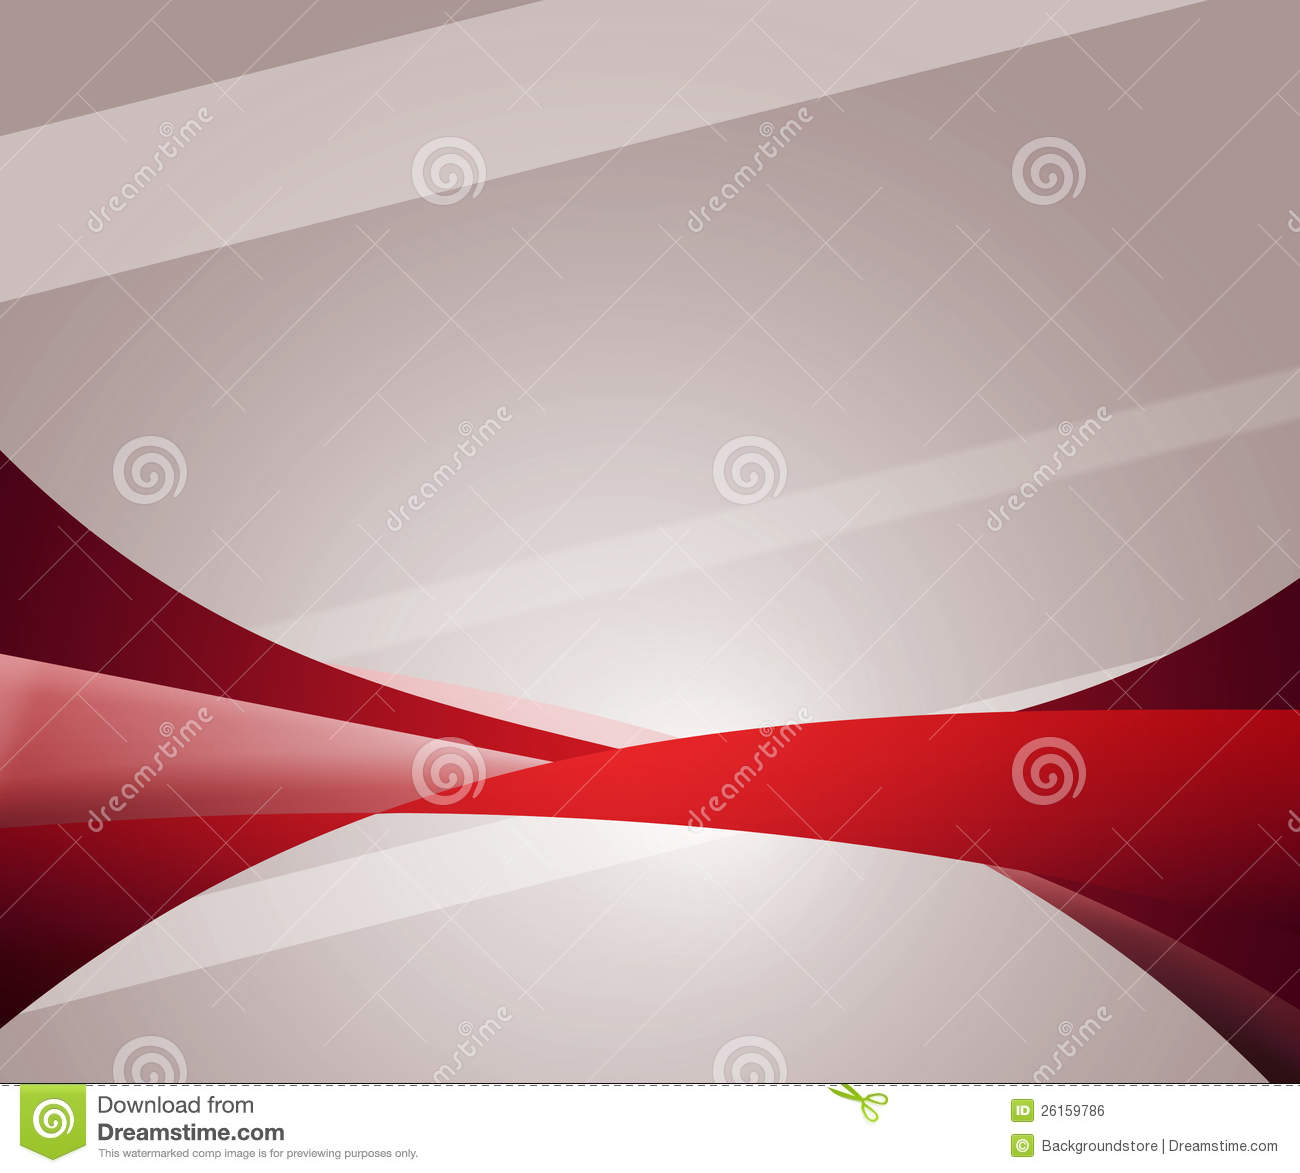 red simple abstract background stock illustration - illustration of